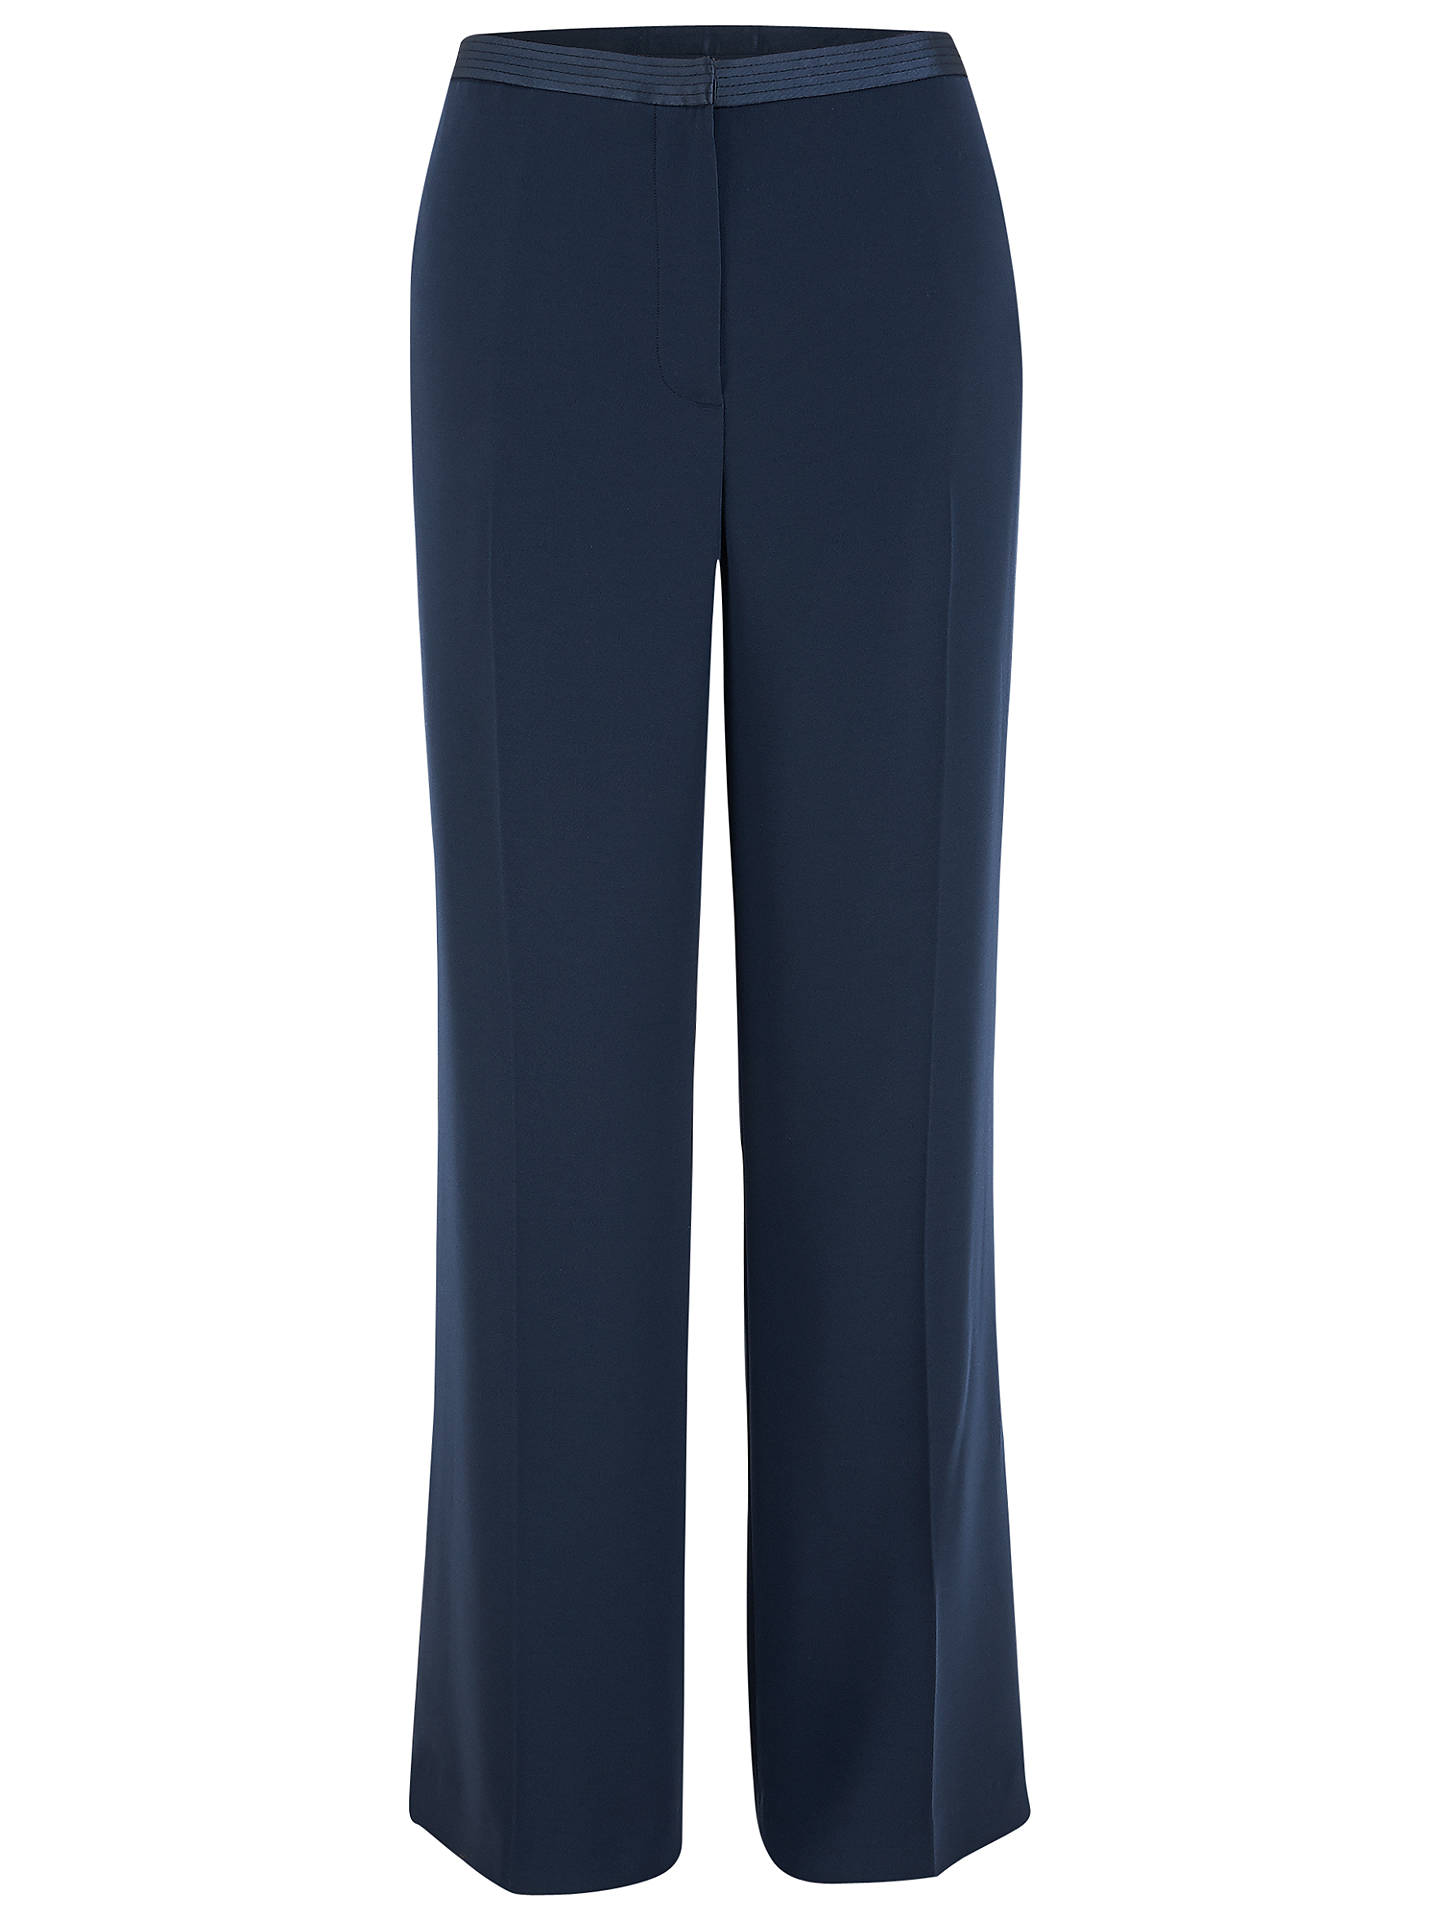 Buy Chesca Satin Back Trousers, Navy, 12 Online at johnlewis.com